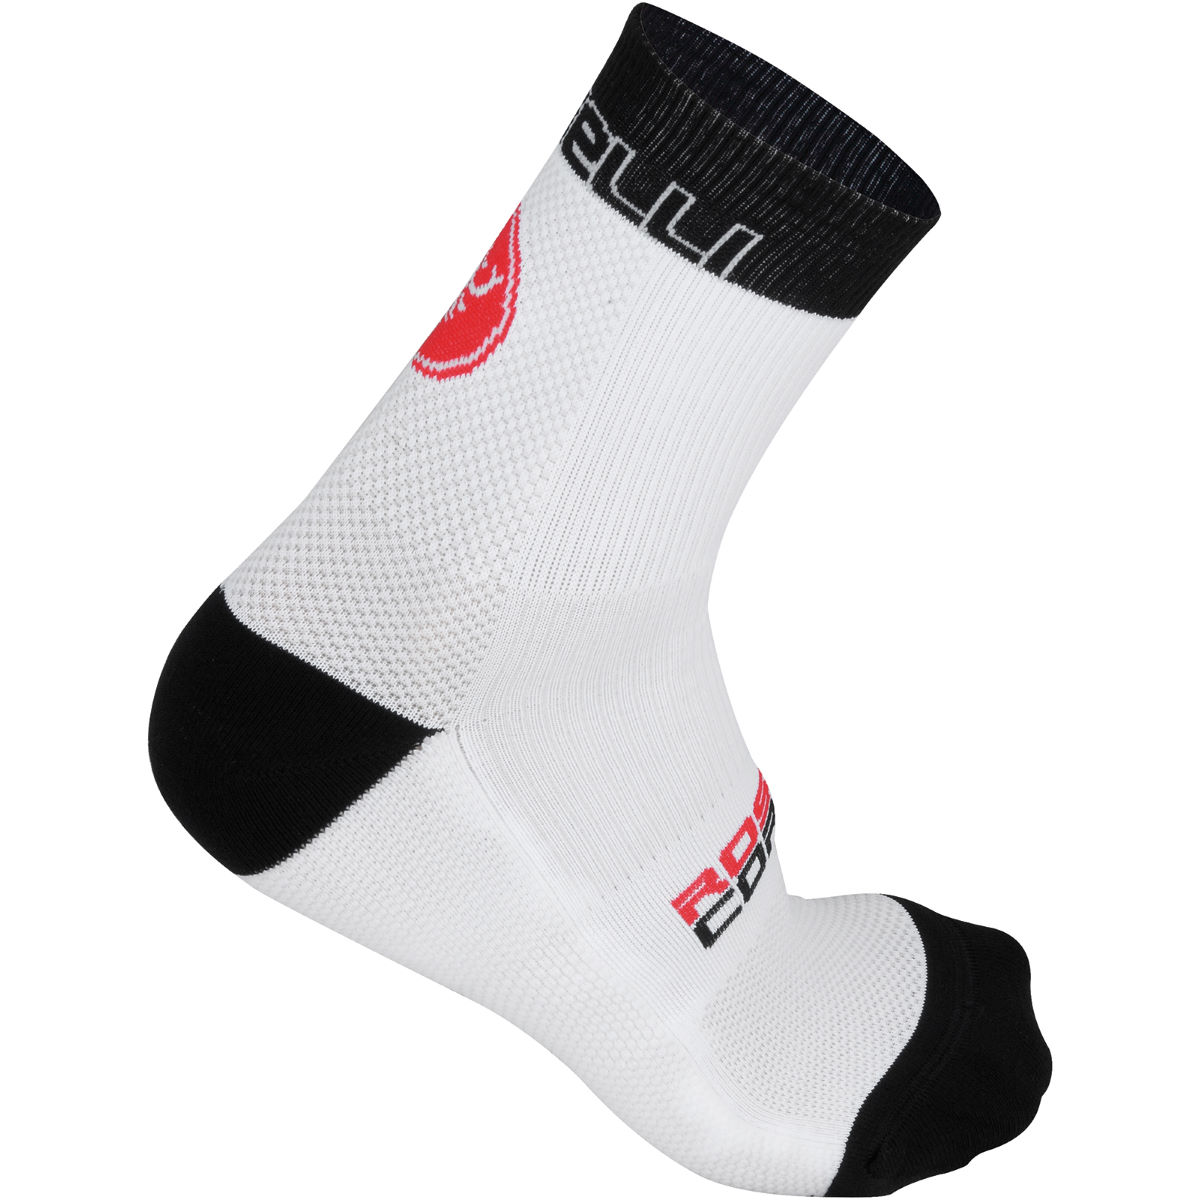 Castelli Free X9 Cycling Sock